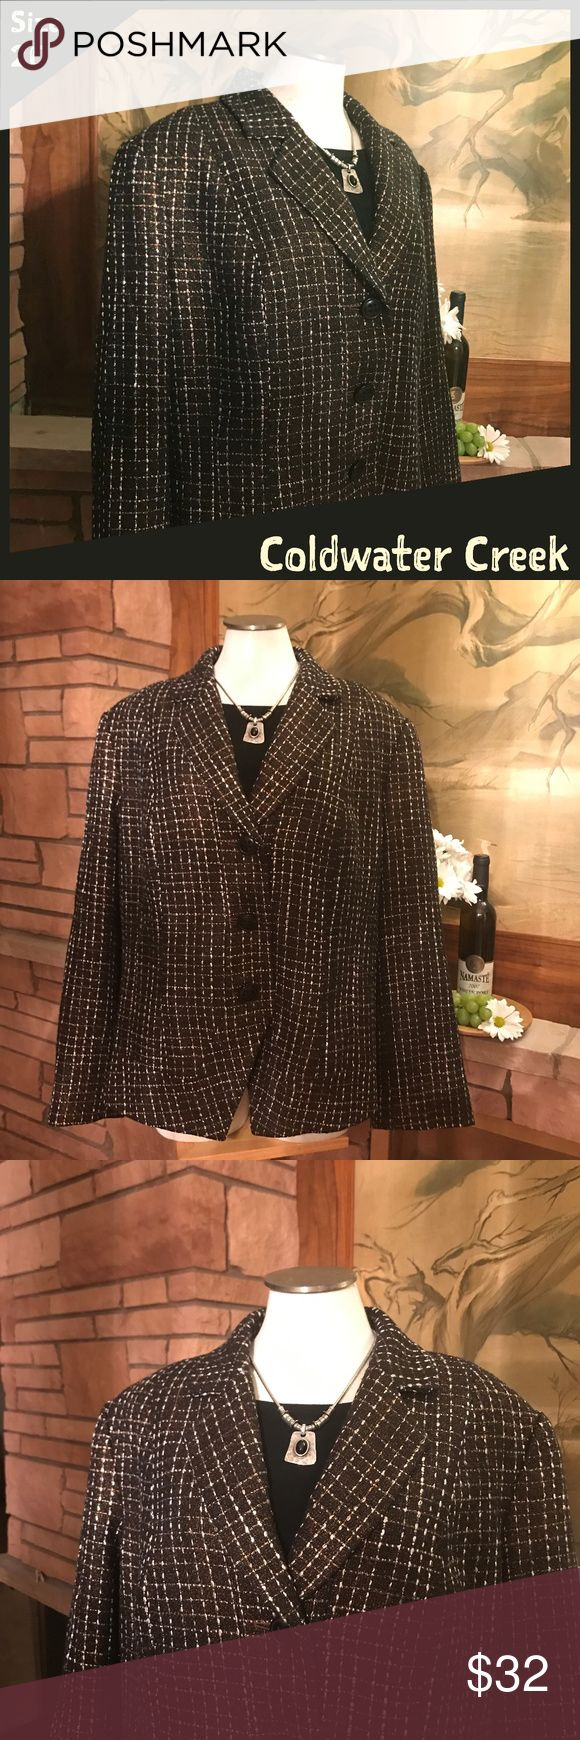 "🐣➕ Coldwater Creek Blazer This beautiful Coldwater Creek jacket will look amazing on you and make a great addition to your wardrobe!   Measurements:  -Armpit-to-armpit: 26 1/4""  -Length: 25 1/4""   From a smoke-free and happy-to-bundle closet.   No trades or transactions outside of Poshmark. [T98] Coldwater Creek Jackets & Coats Blazers"